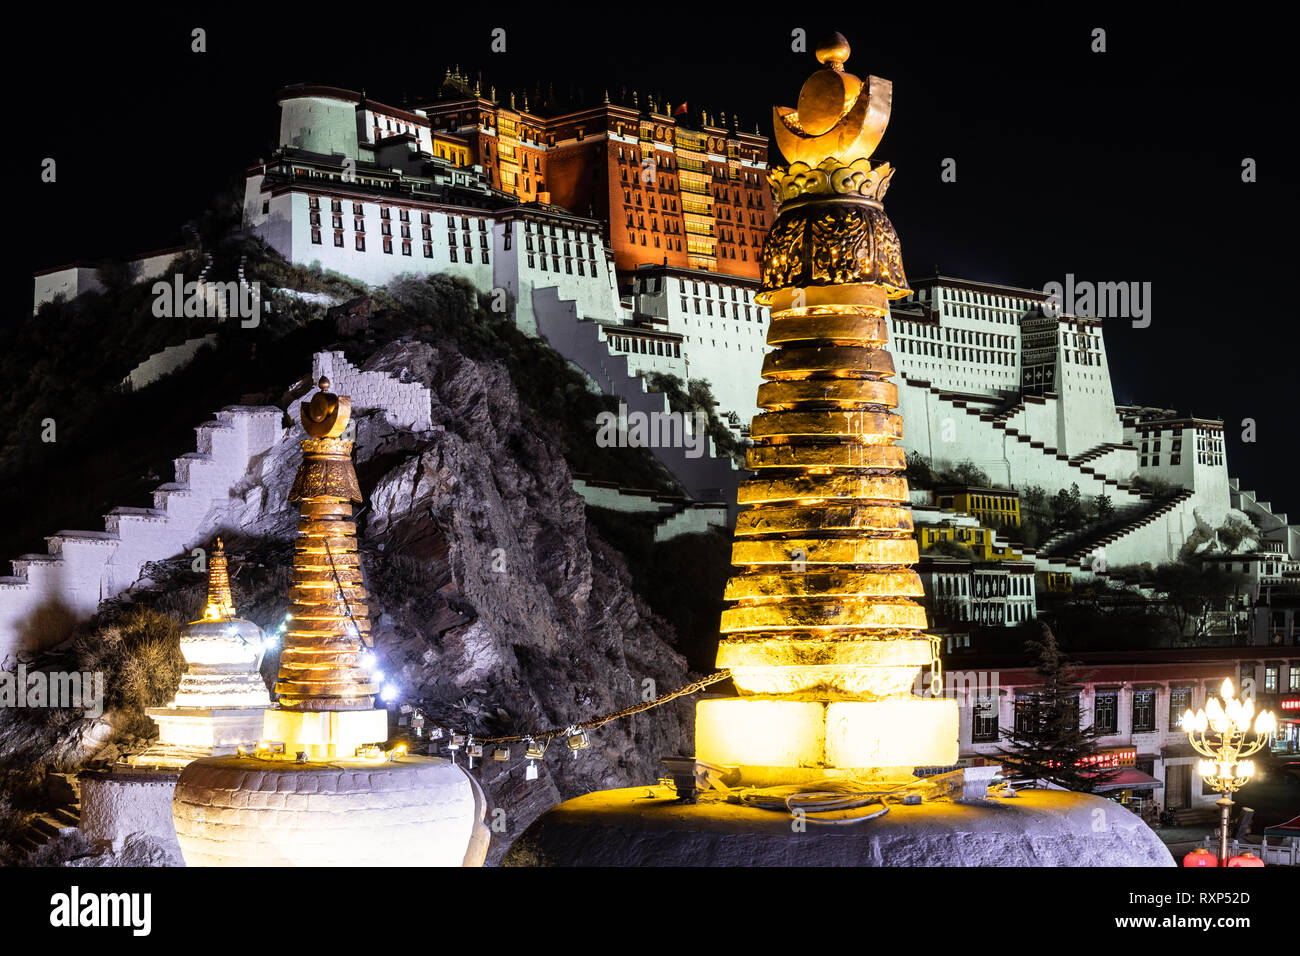 Night view of the illuminated Potala palace in Lhasa old town in Tibet, China - Stock Image